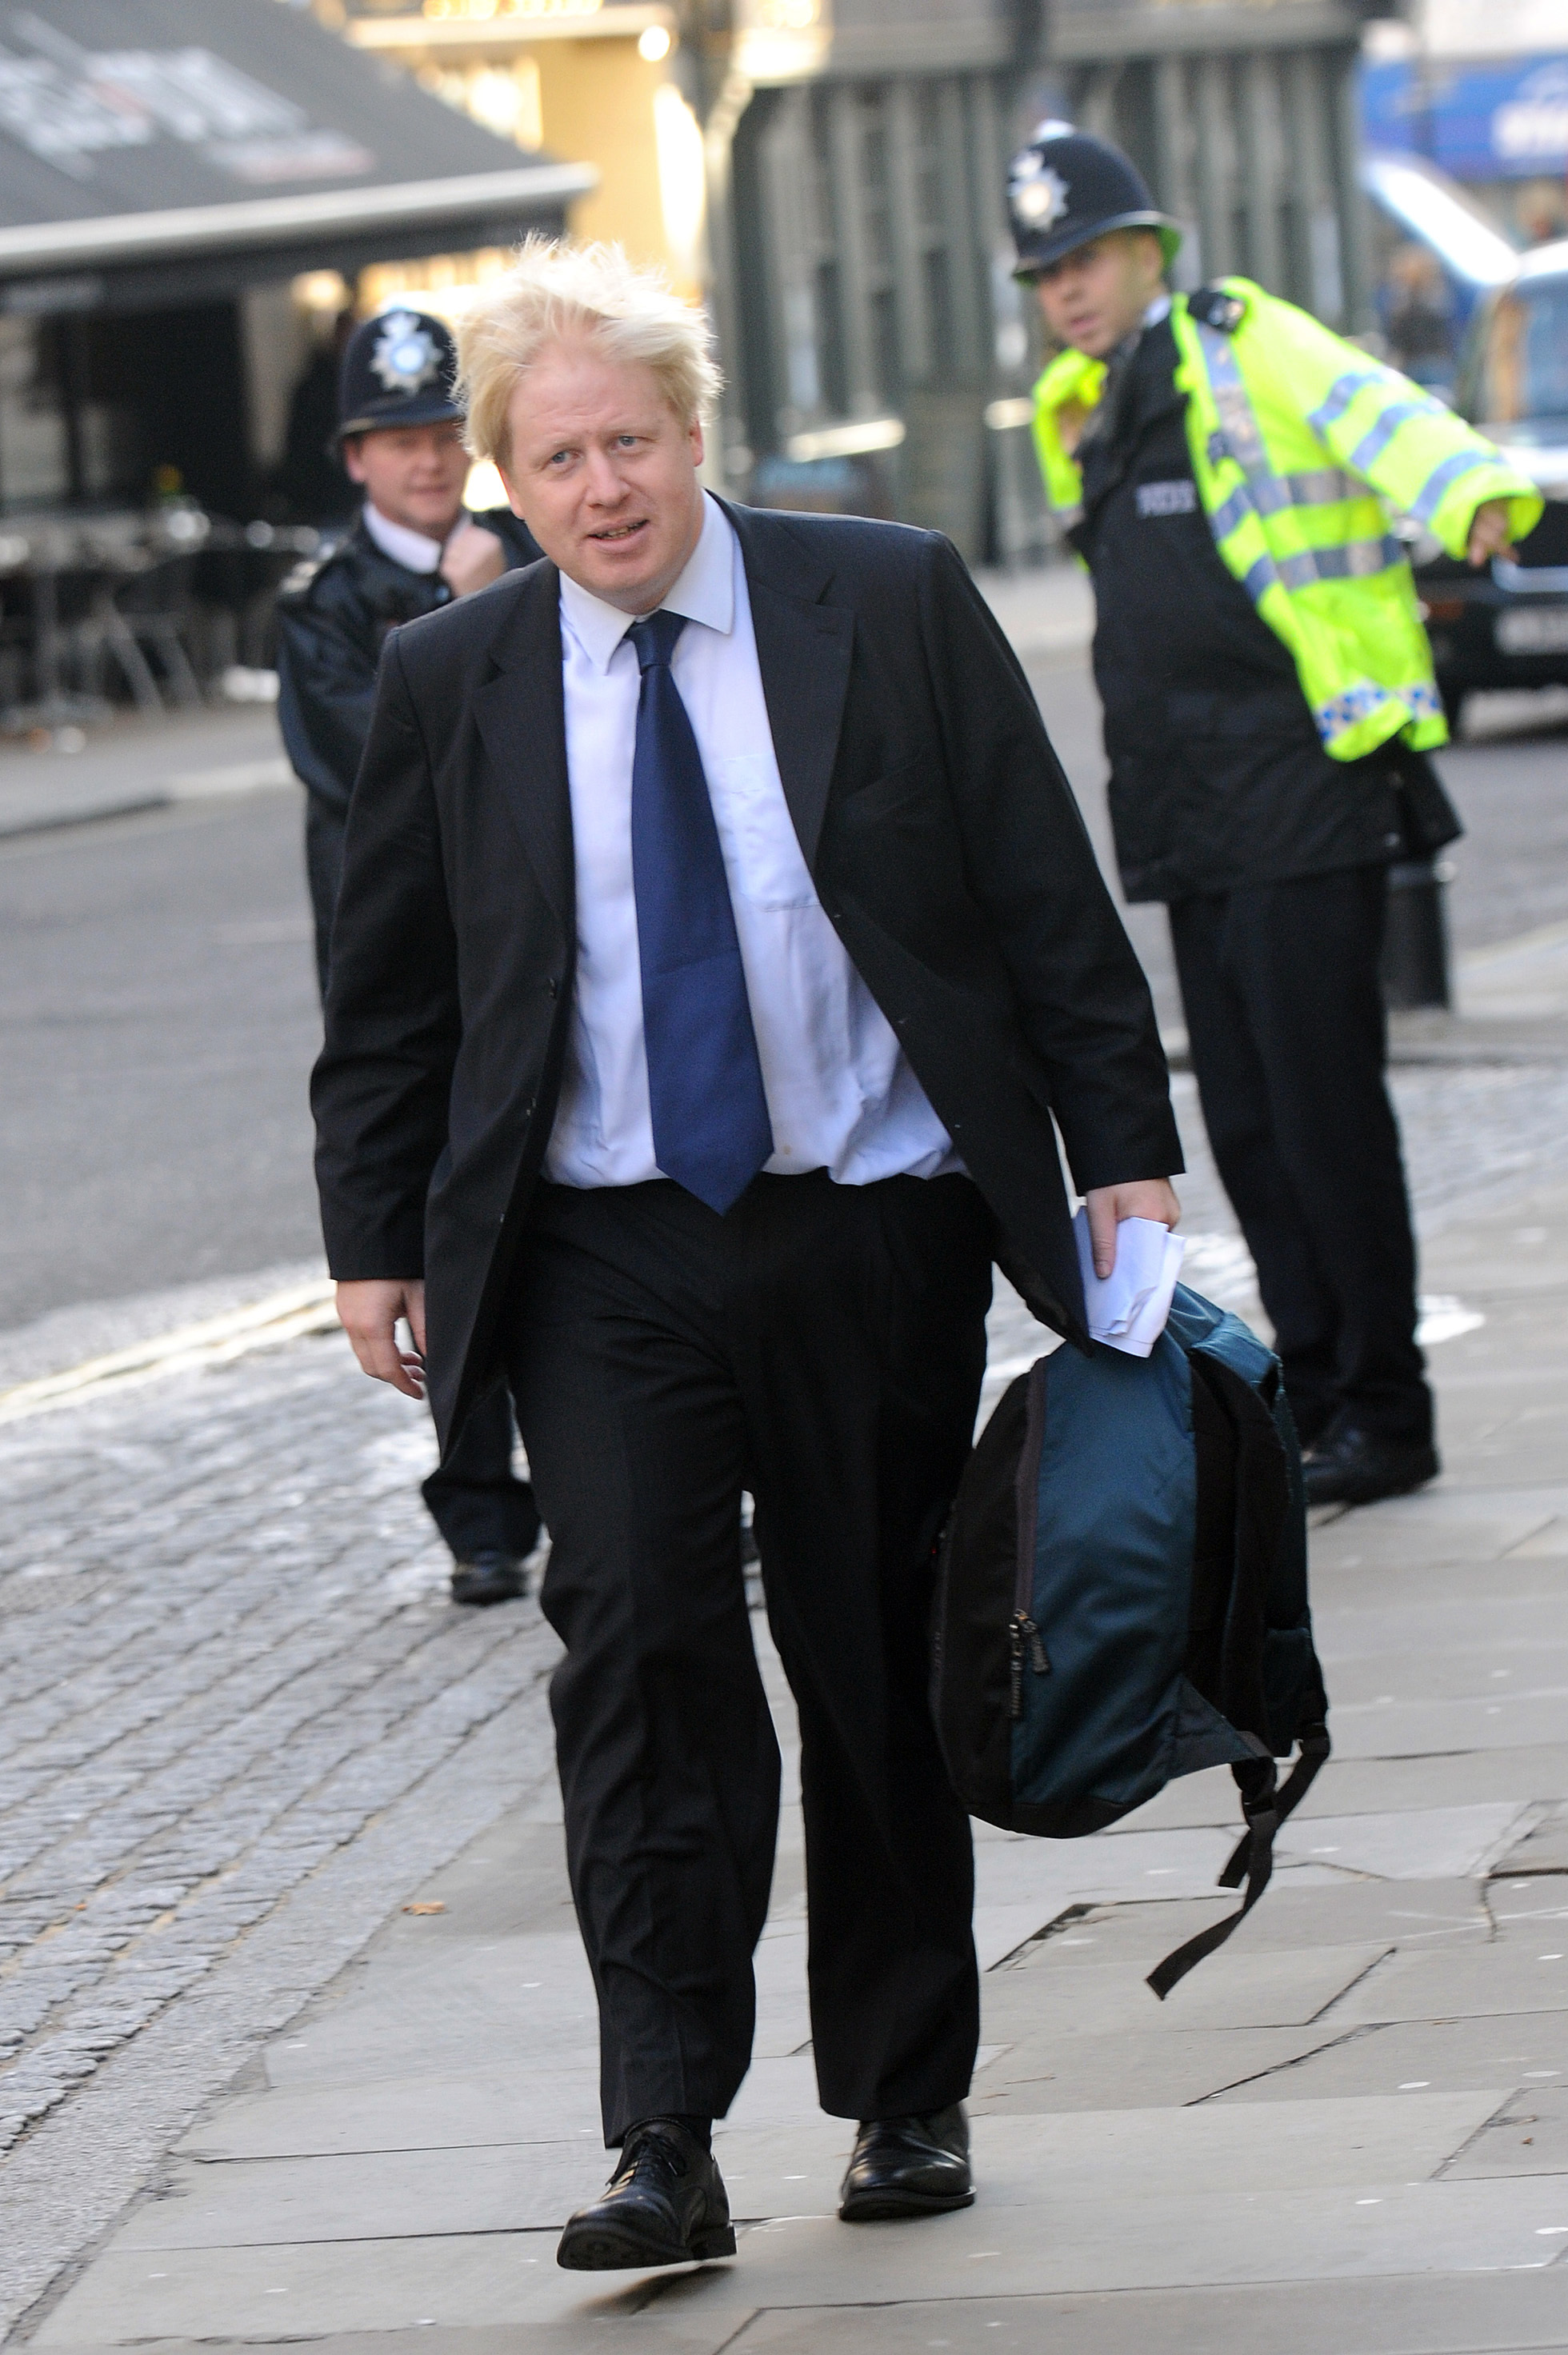 Mayor of London Boris Johnson arrives to attend a concert for children organised by The Prince's Foundation for Children and the Arts at the Royal Opera House on November 14, 2008 in London.